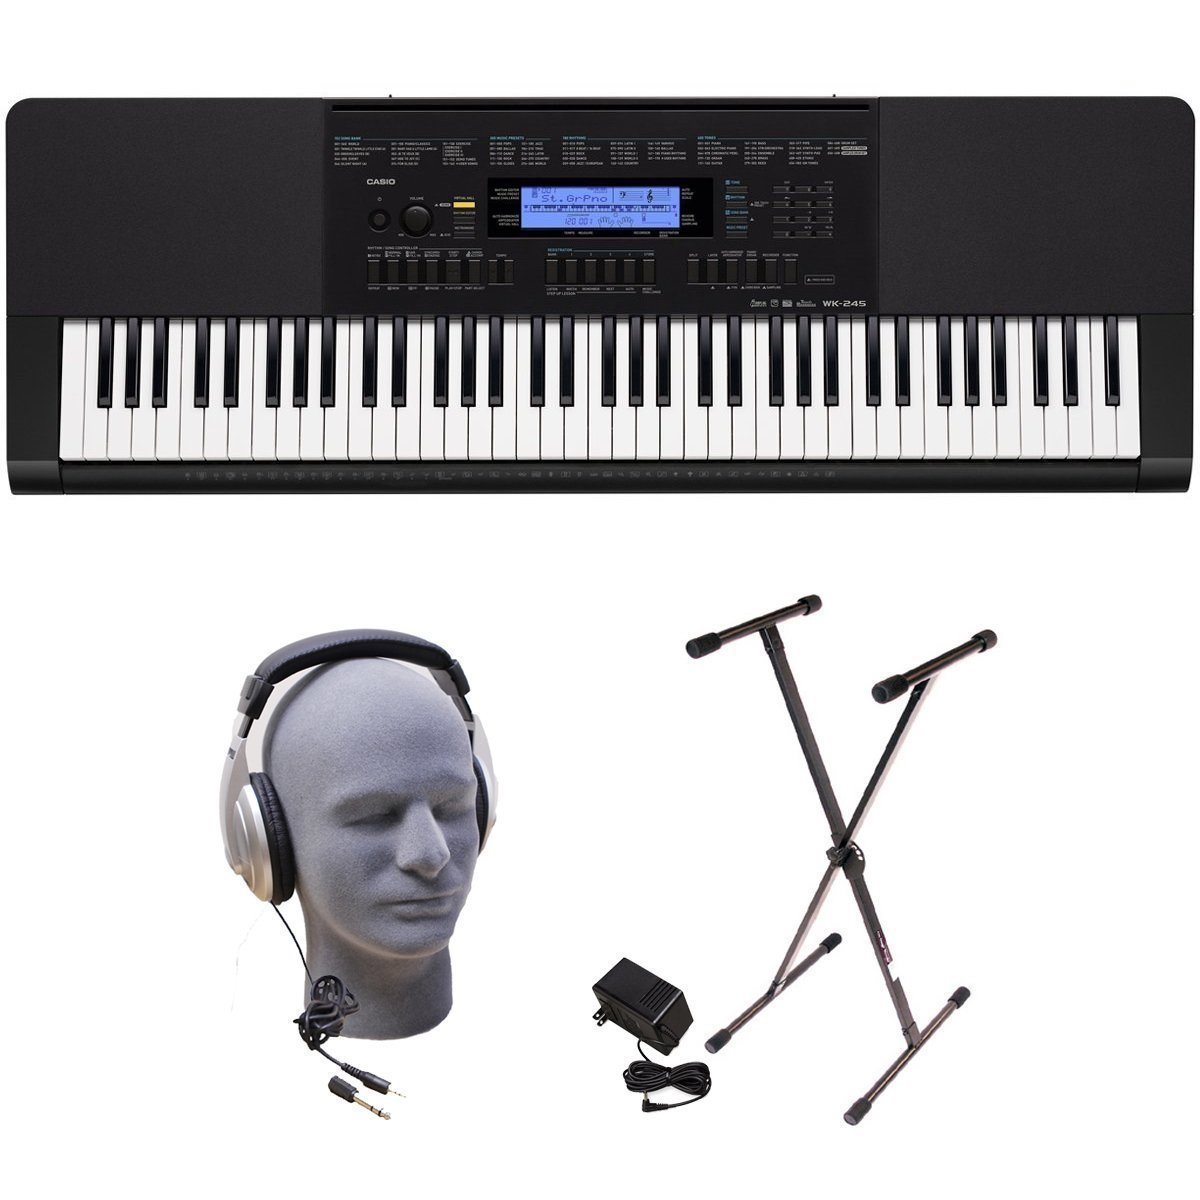 Casio WK-245 PPK 76-Key Premium Portable Keyboard Package with Headphones, Stand and Power Supply